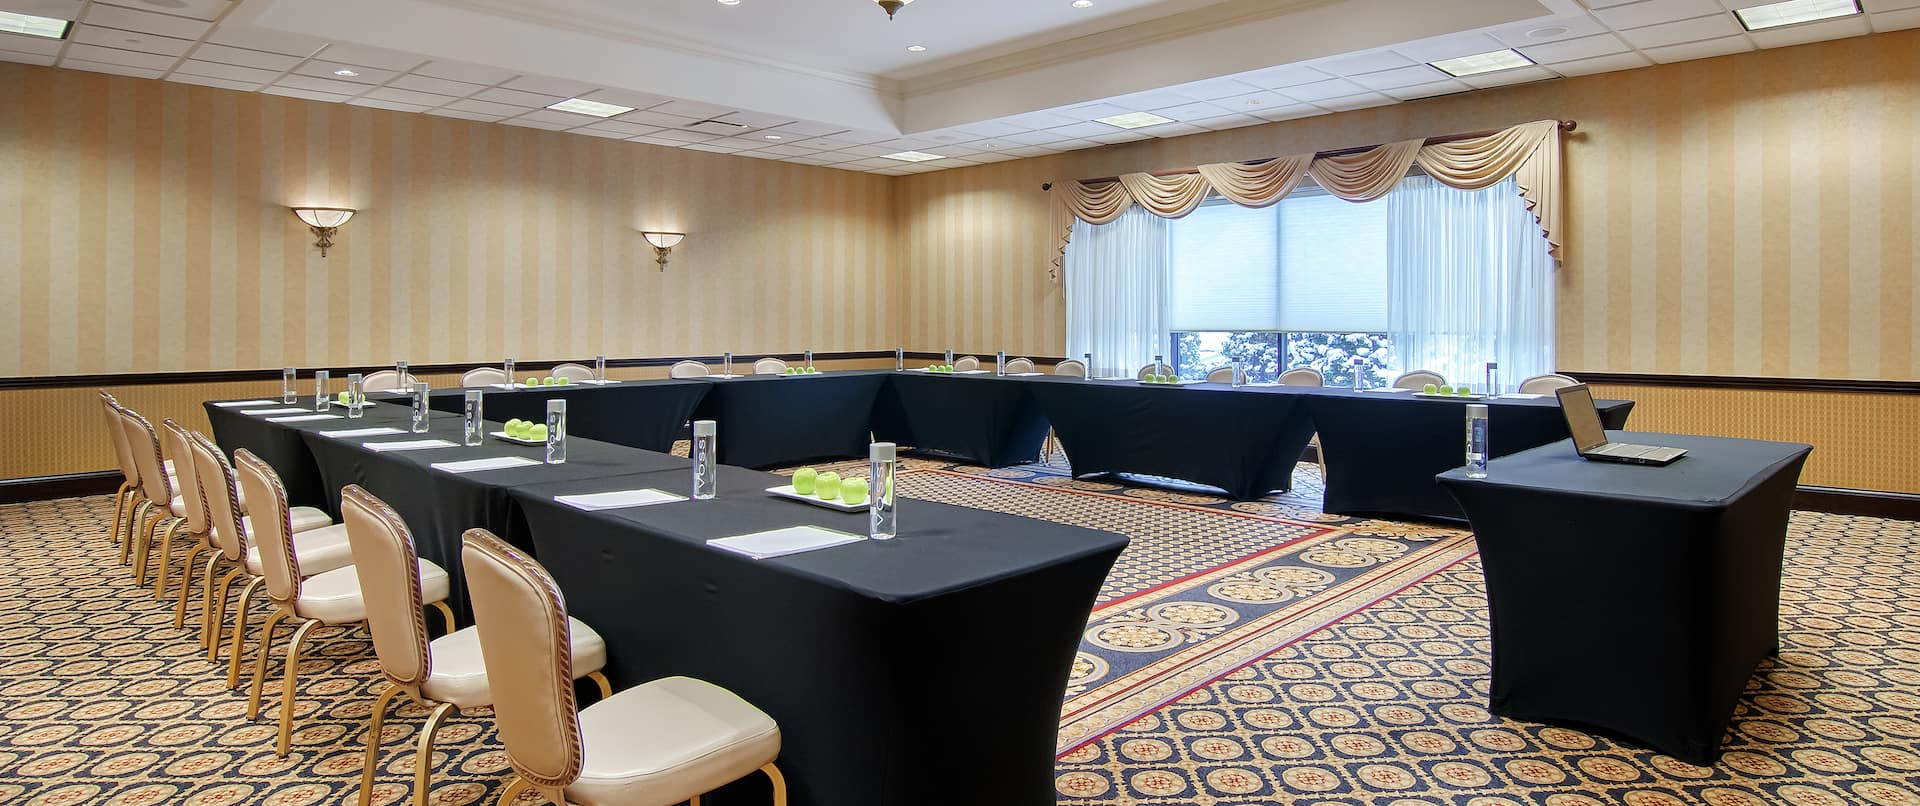 DoubleTree Hotel Meeting Room with Tables and Chairs